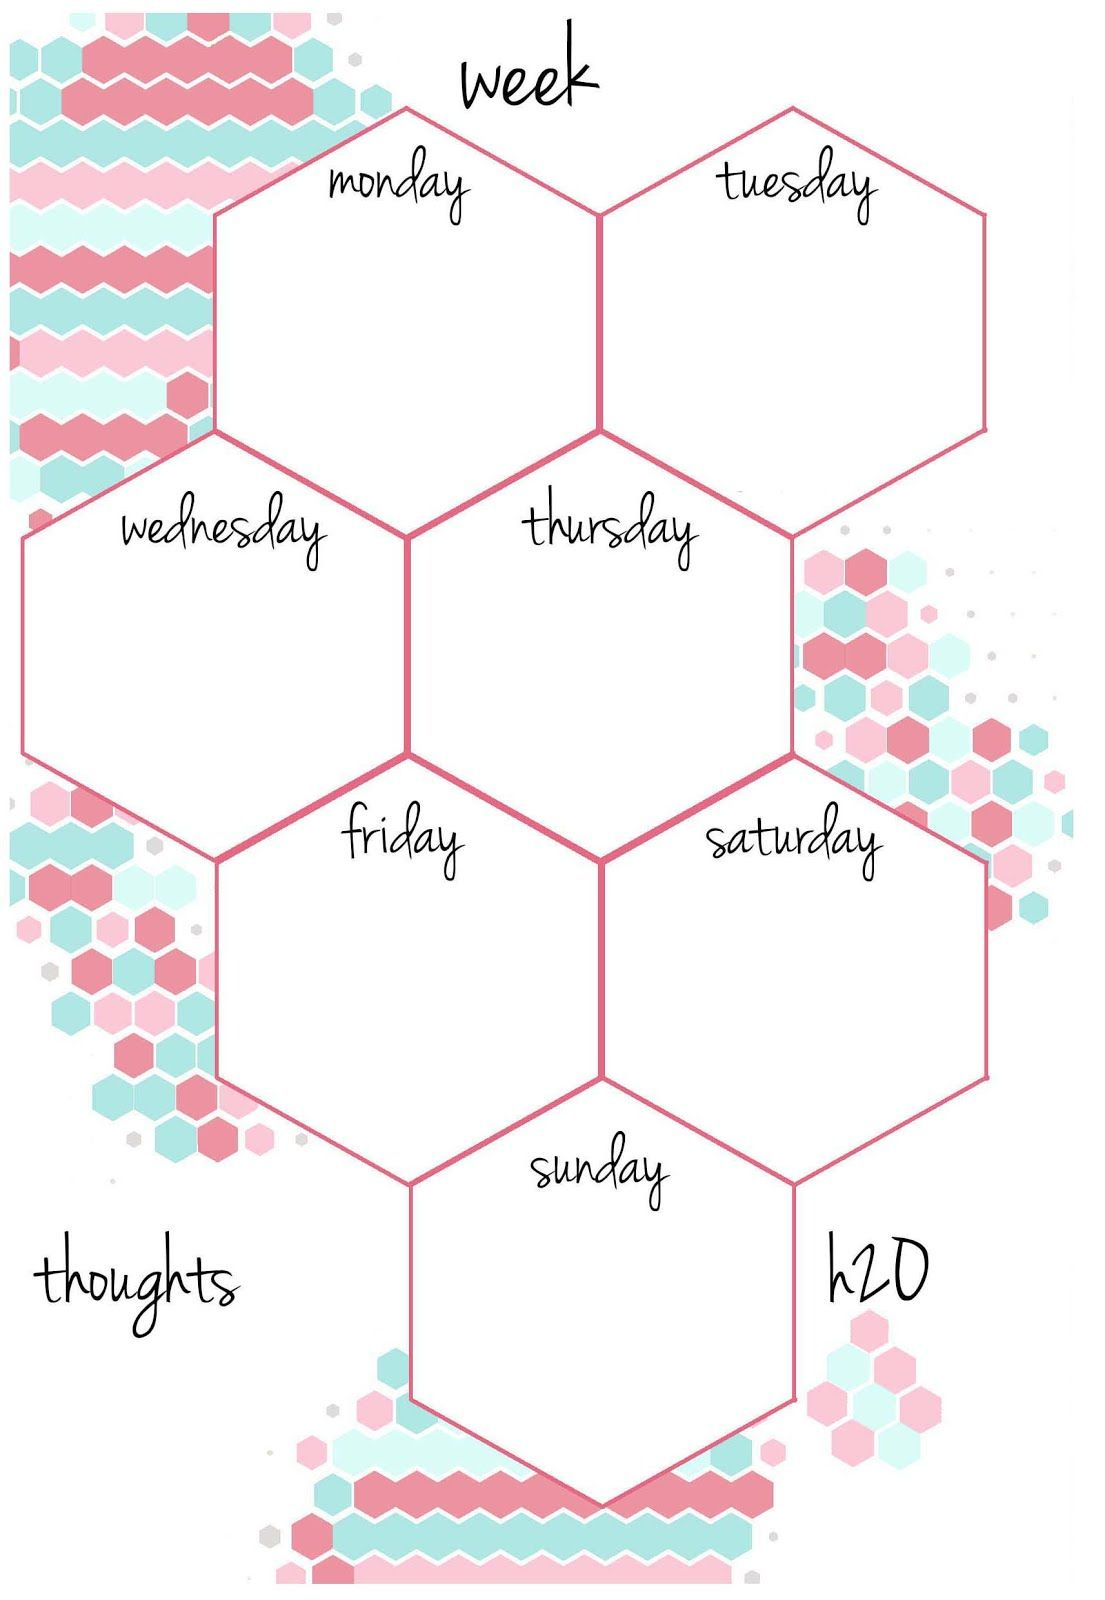 Candy Hexagon Planner Inserts  Undated A  A Week On A Page To